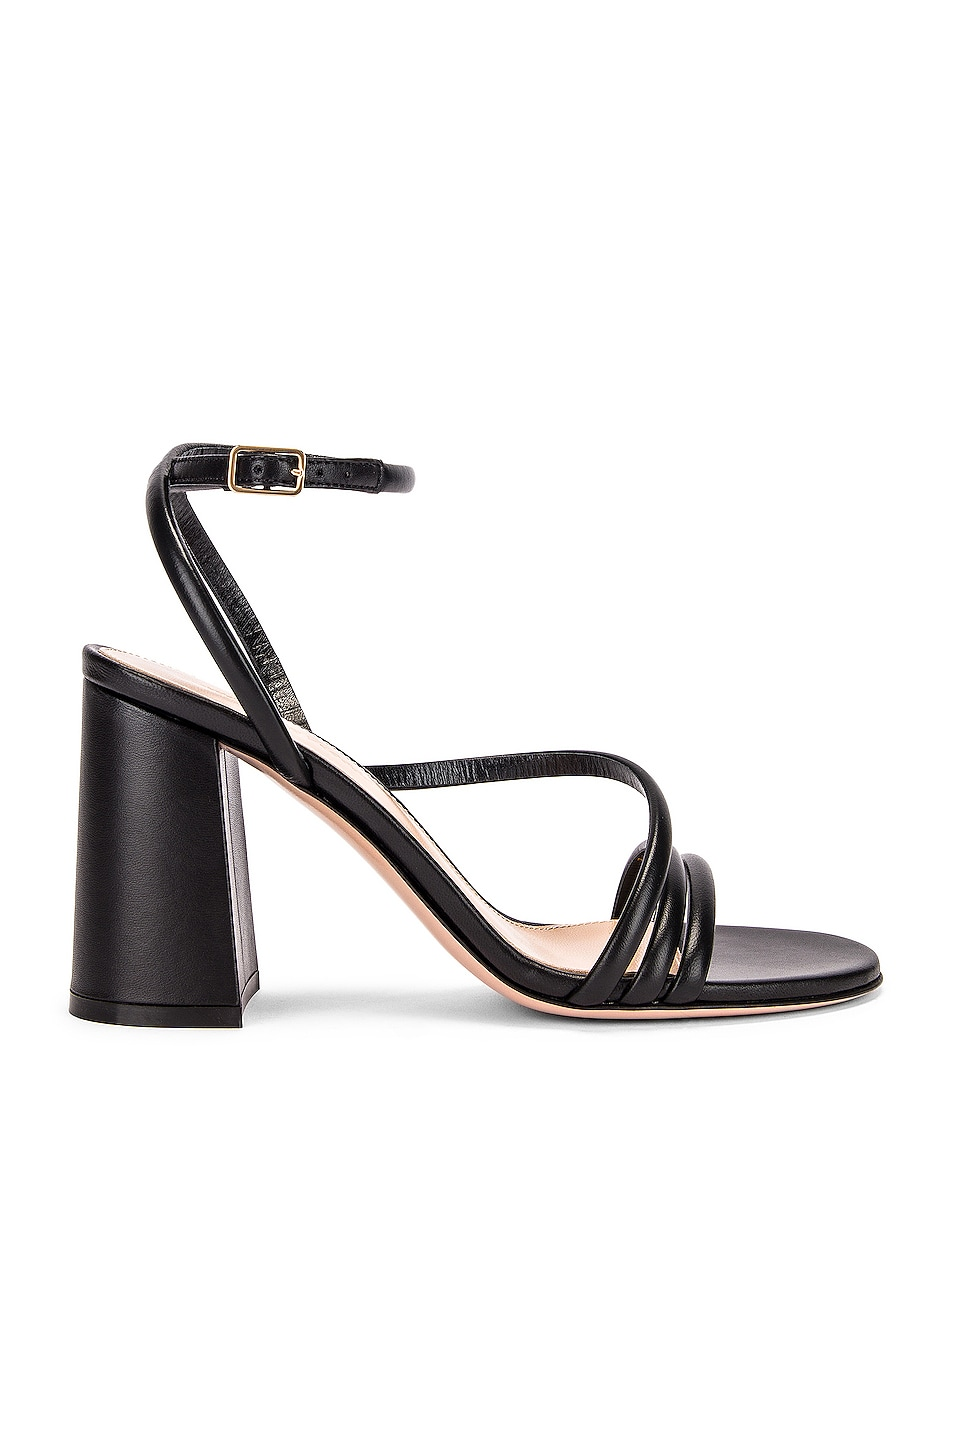 Image 1 of Gianvito Rossi Ankle Strap Sandals in Black